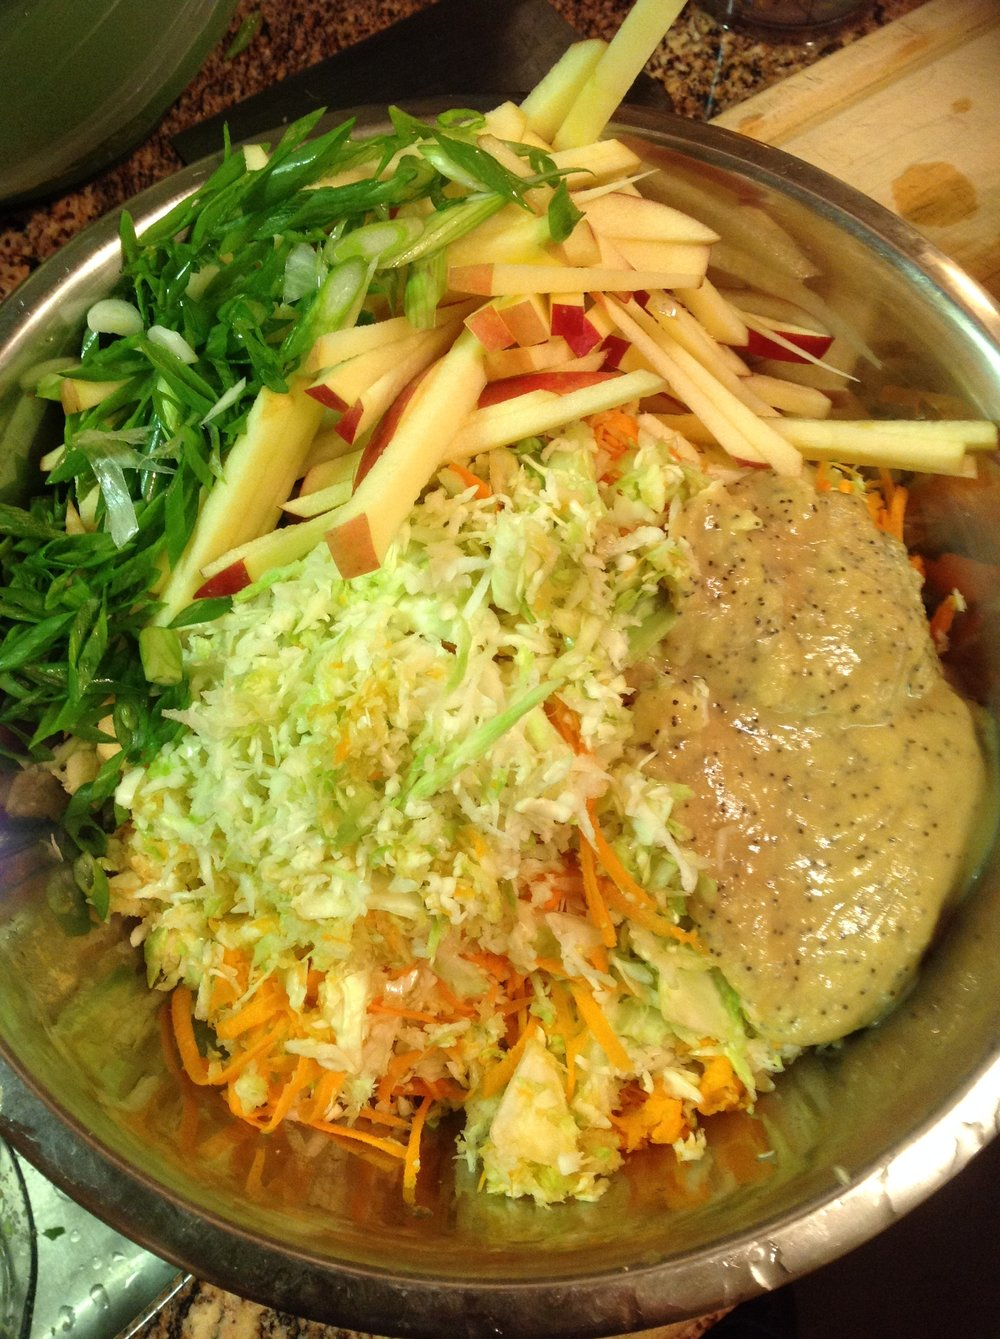 Chef's Cabbage Slaw: Toss shredded cabbage with carrot, apple, and a Poppyseed dressing for a creamy, crunchy coleslaw recipe. This oil-free salad works great over veggie burgers, in tacos, or just served at a healthy summer picnic